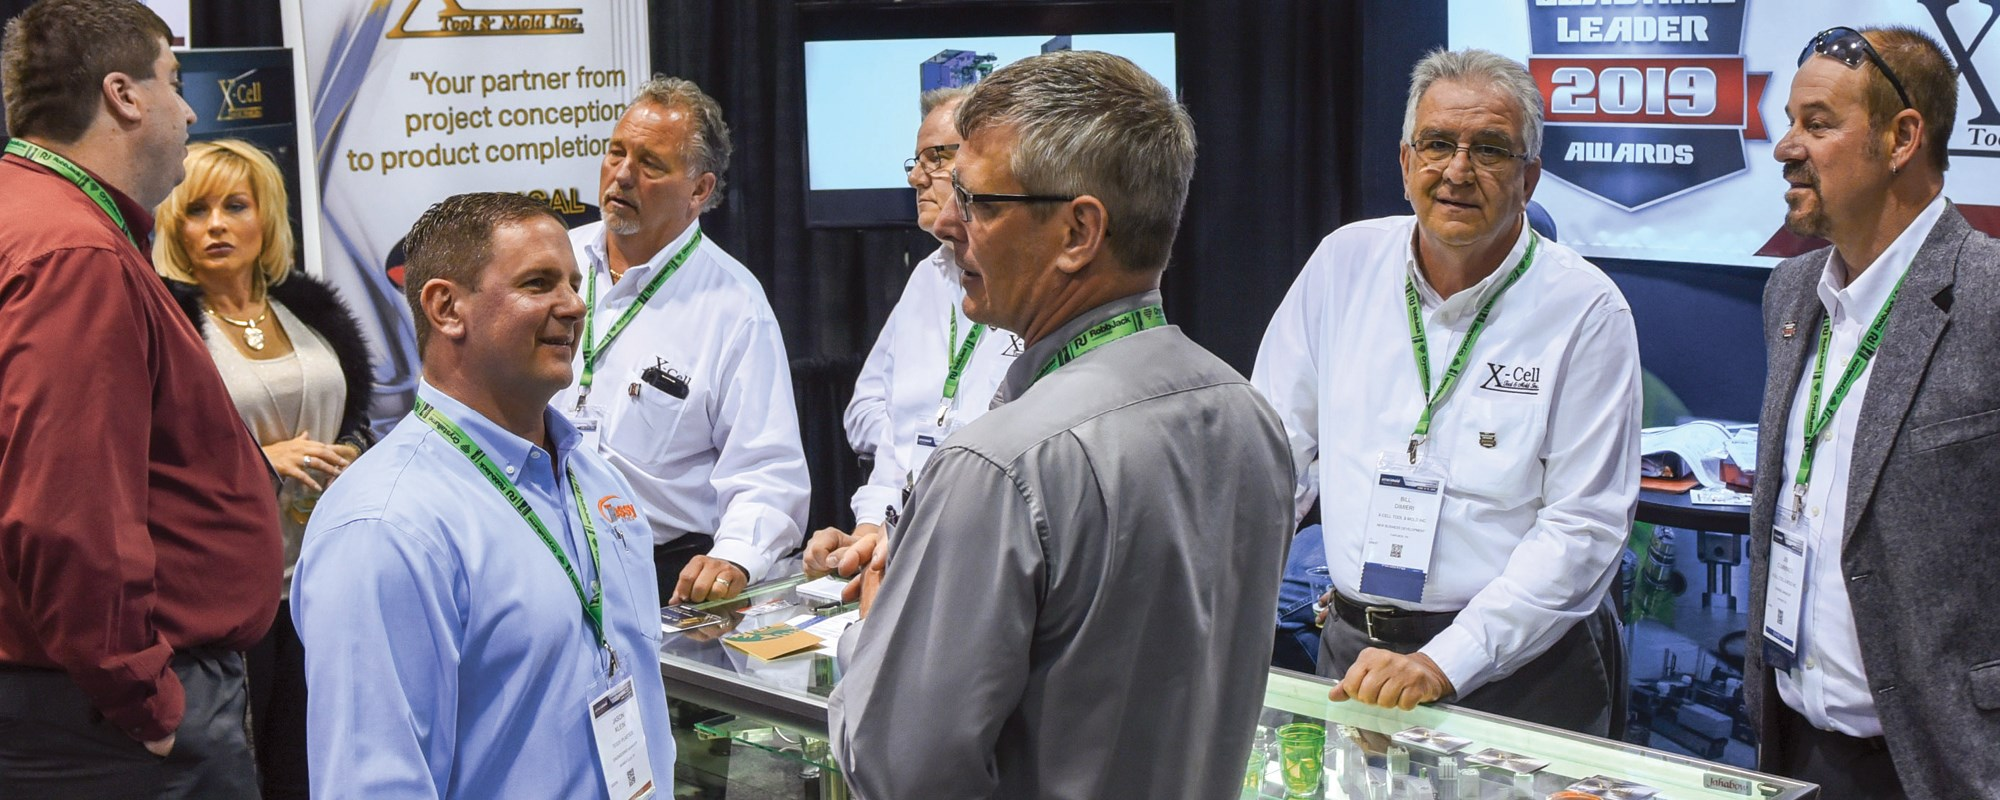 Several moldmaking professionals having a conversation on the Amerimold show floor.